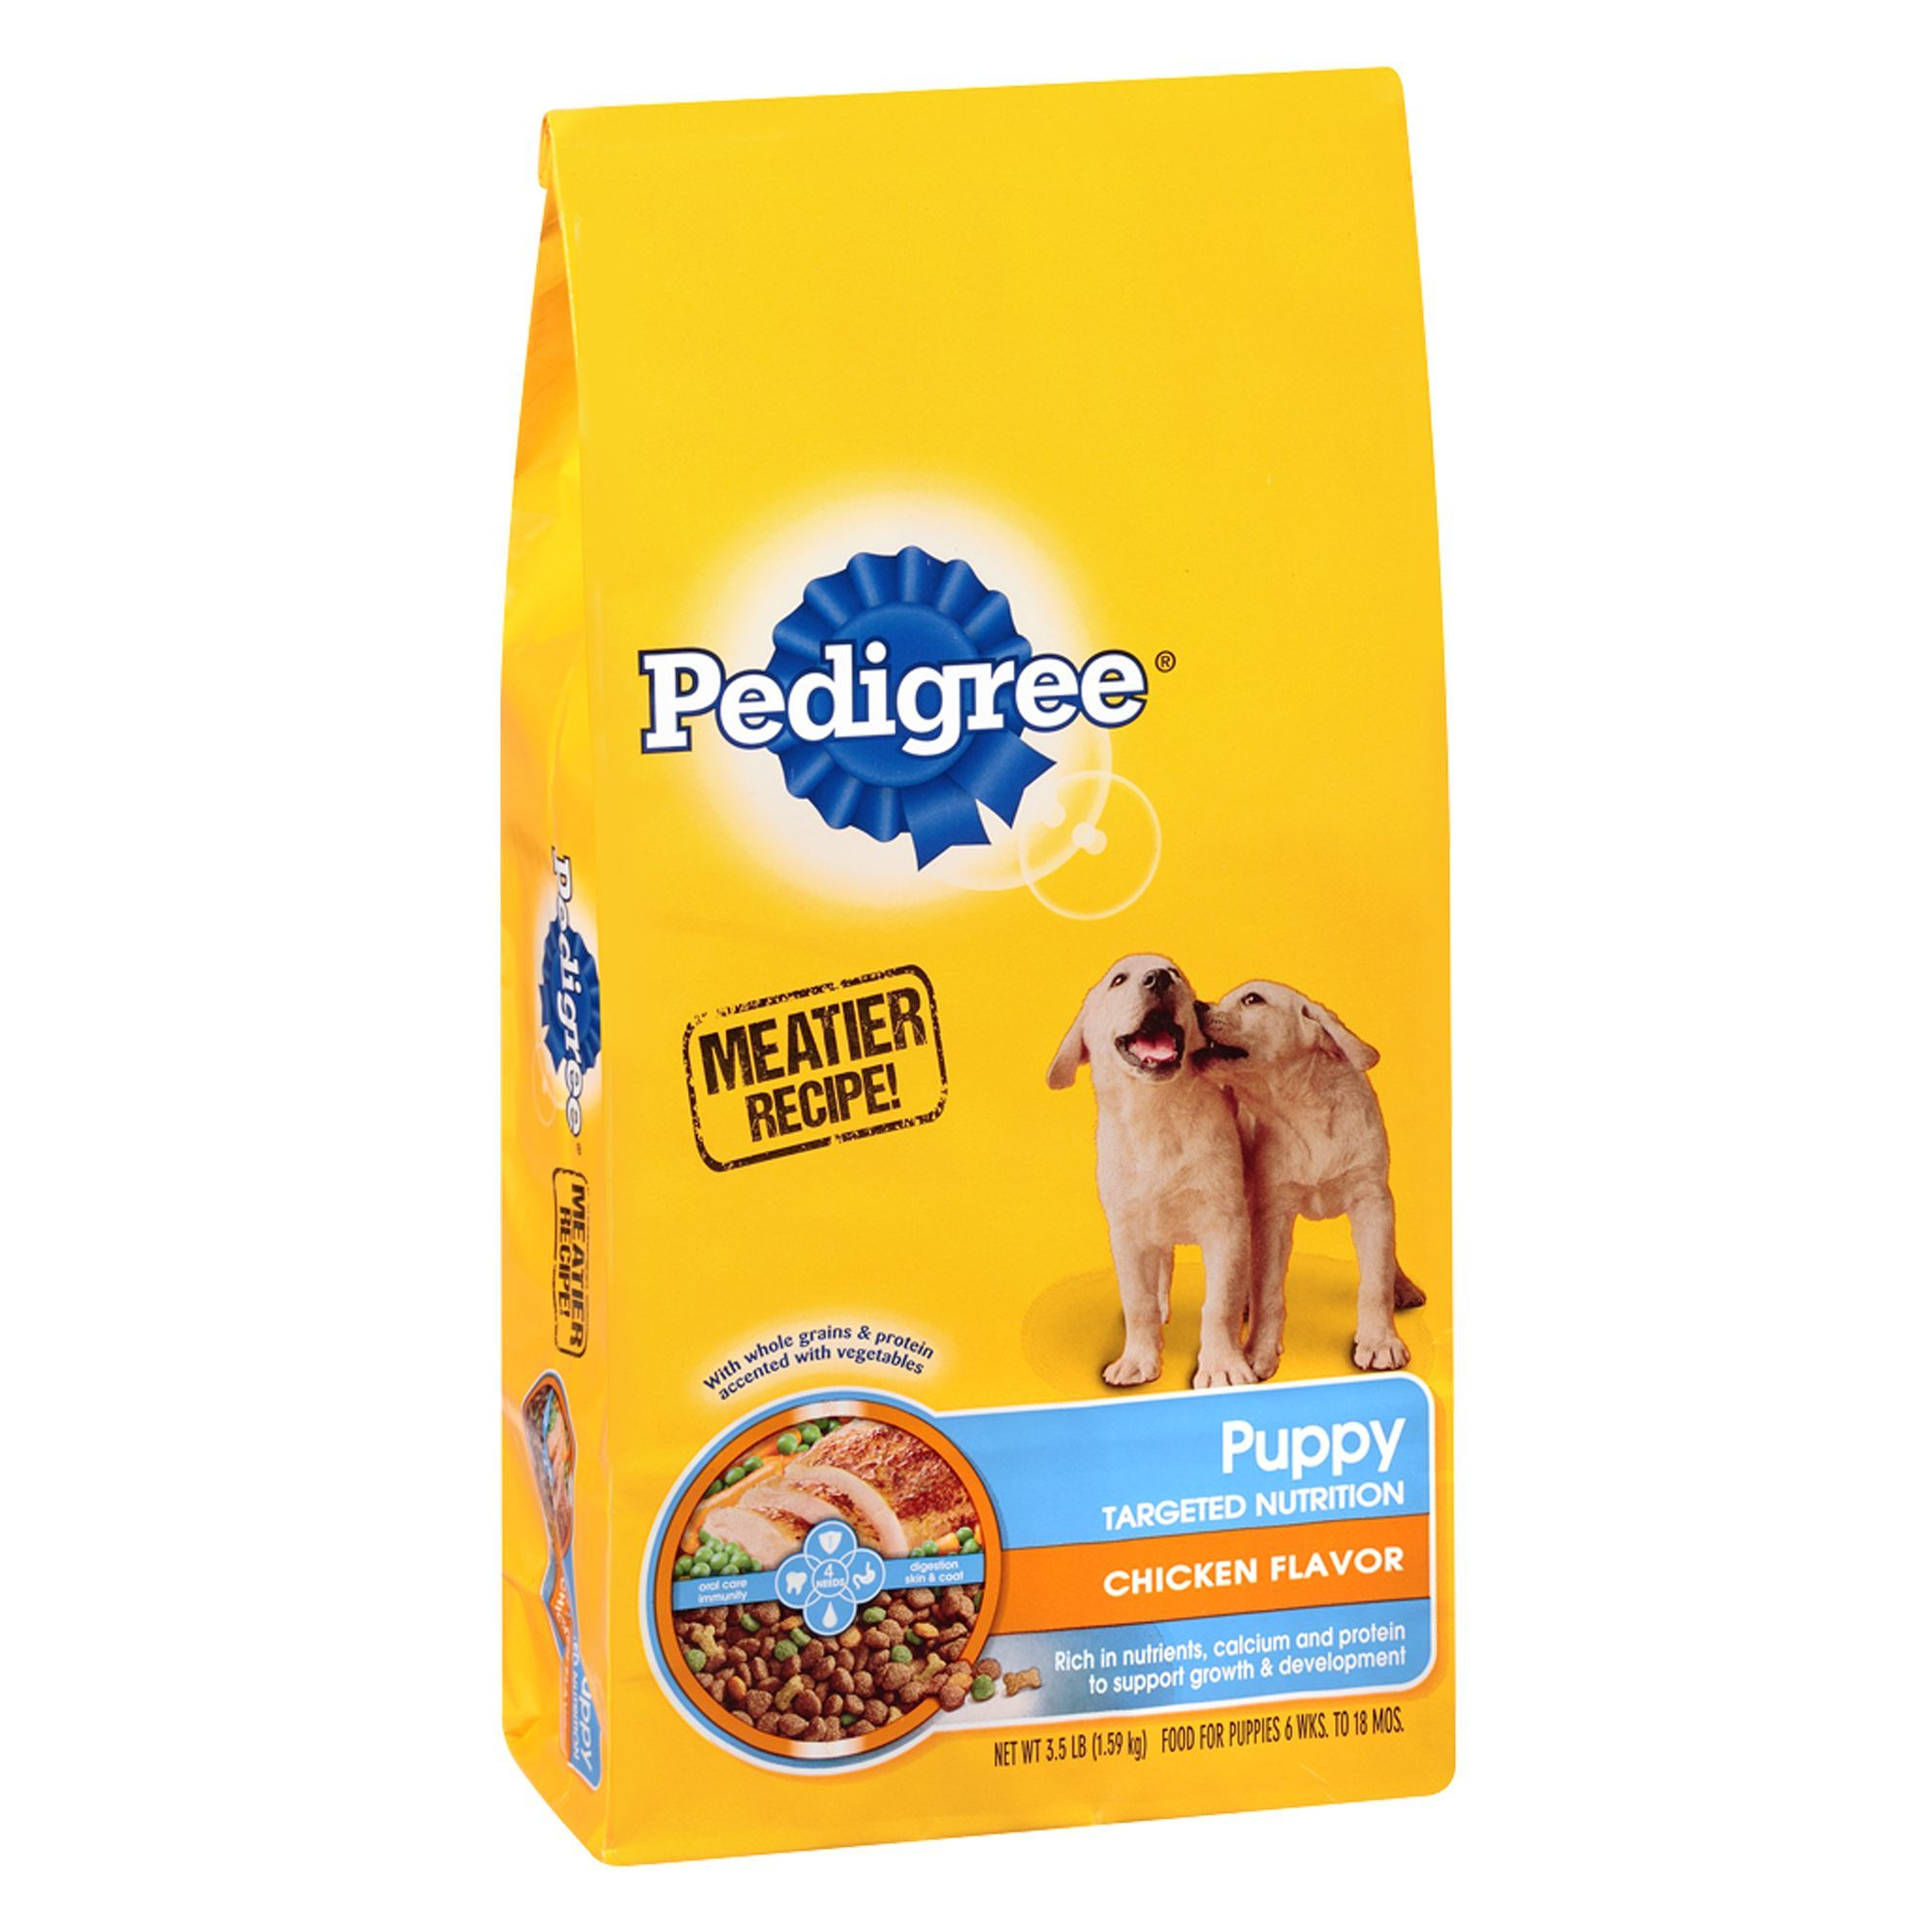 Pedigree Targeted Nutrition Puppy Food Chicken Size 3 5 Lb